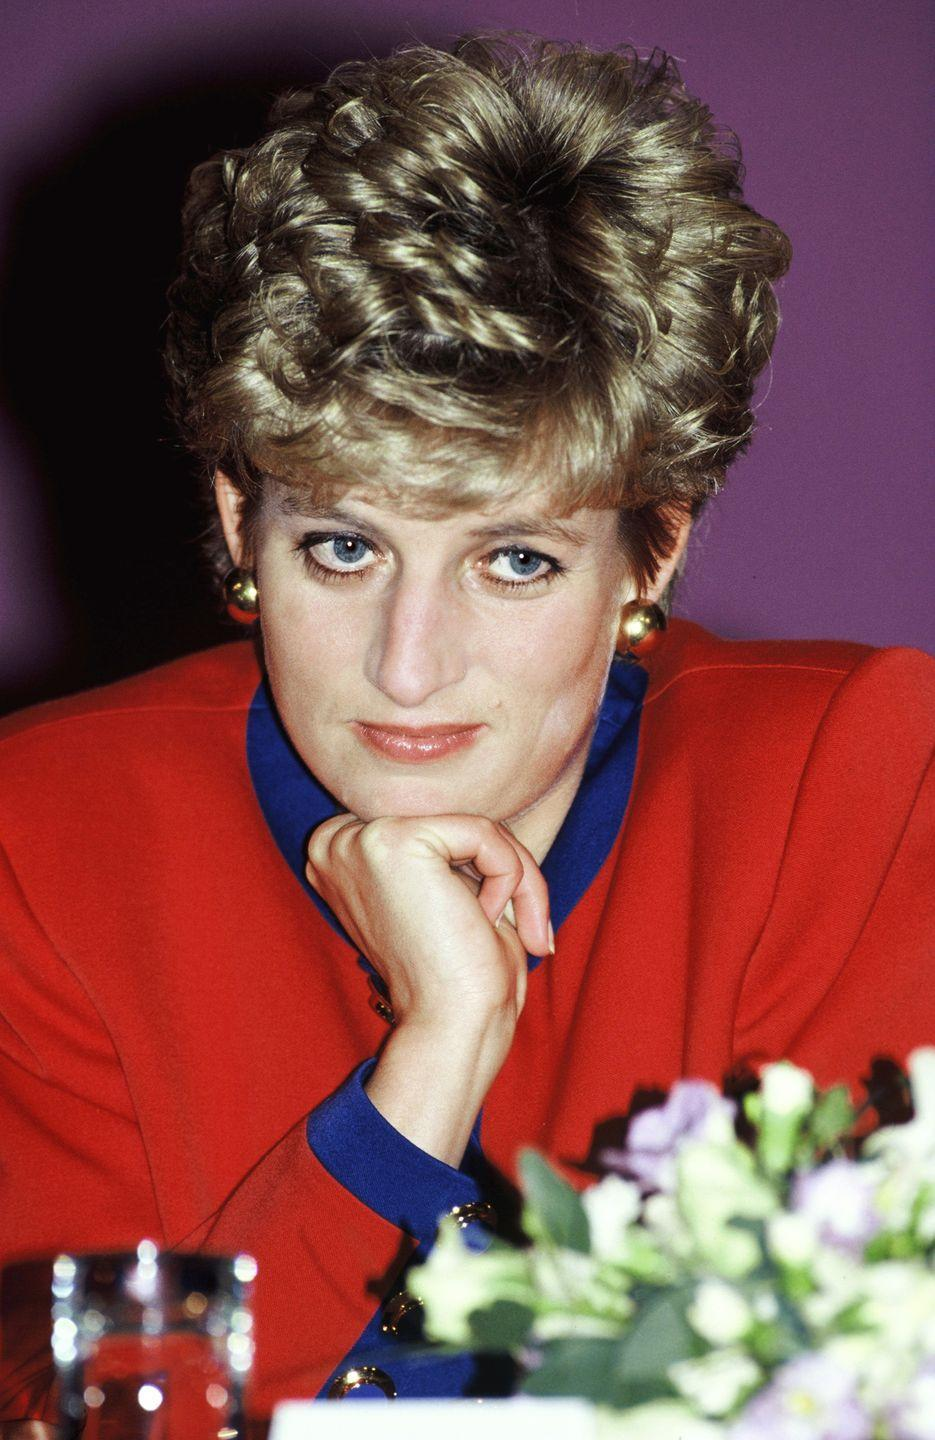 <p>Princess Diana was known to buck royal protocol. One way she did that? Taking her sons to McDonald's for burgers. Here, she's pictured at a McDonald's charity lunch held in London. <br></p>